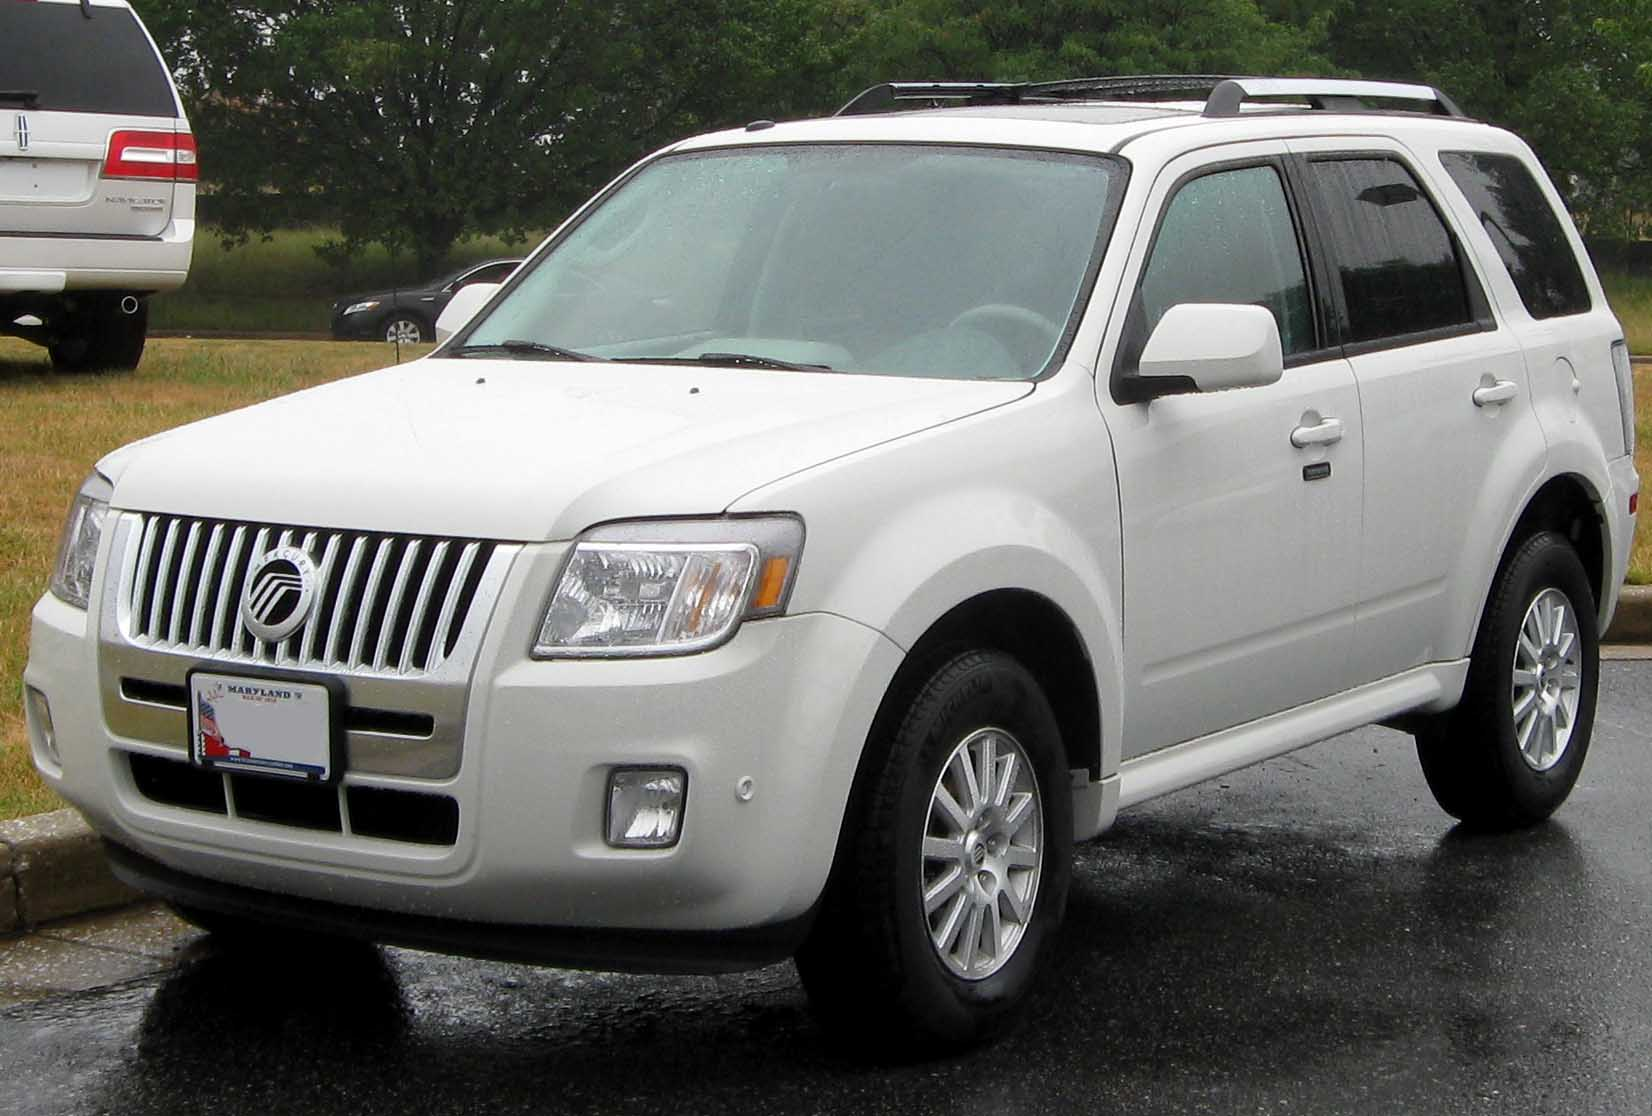 Mercury Mariner Reviews - Mercury Mariner Price, Photos, and Specs ...